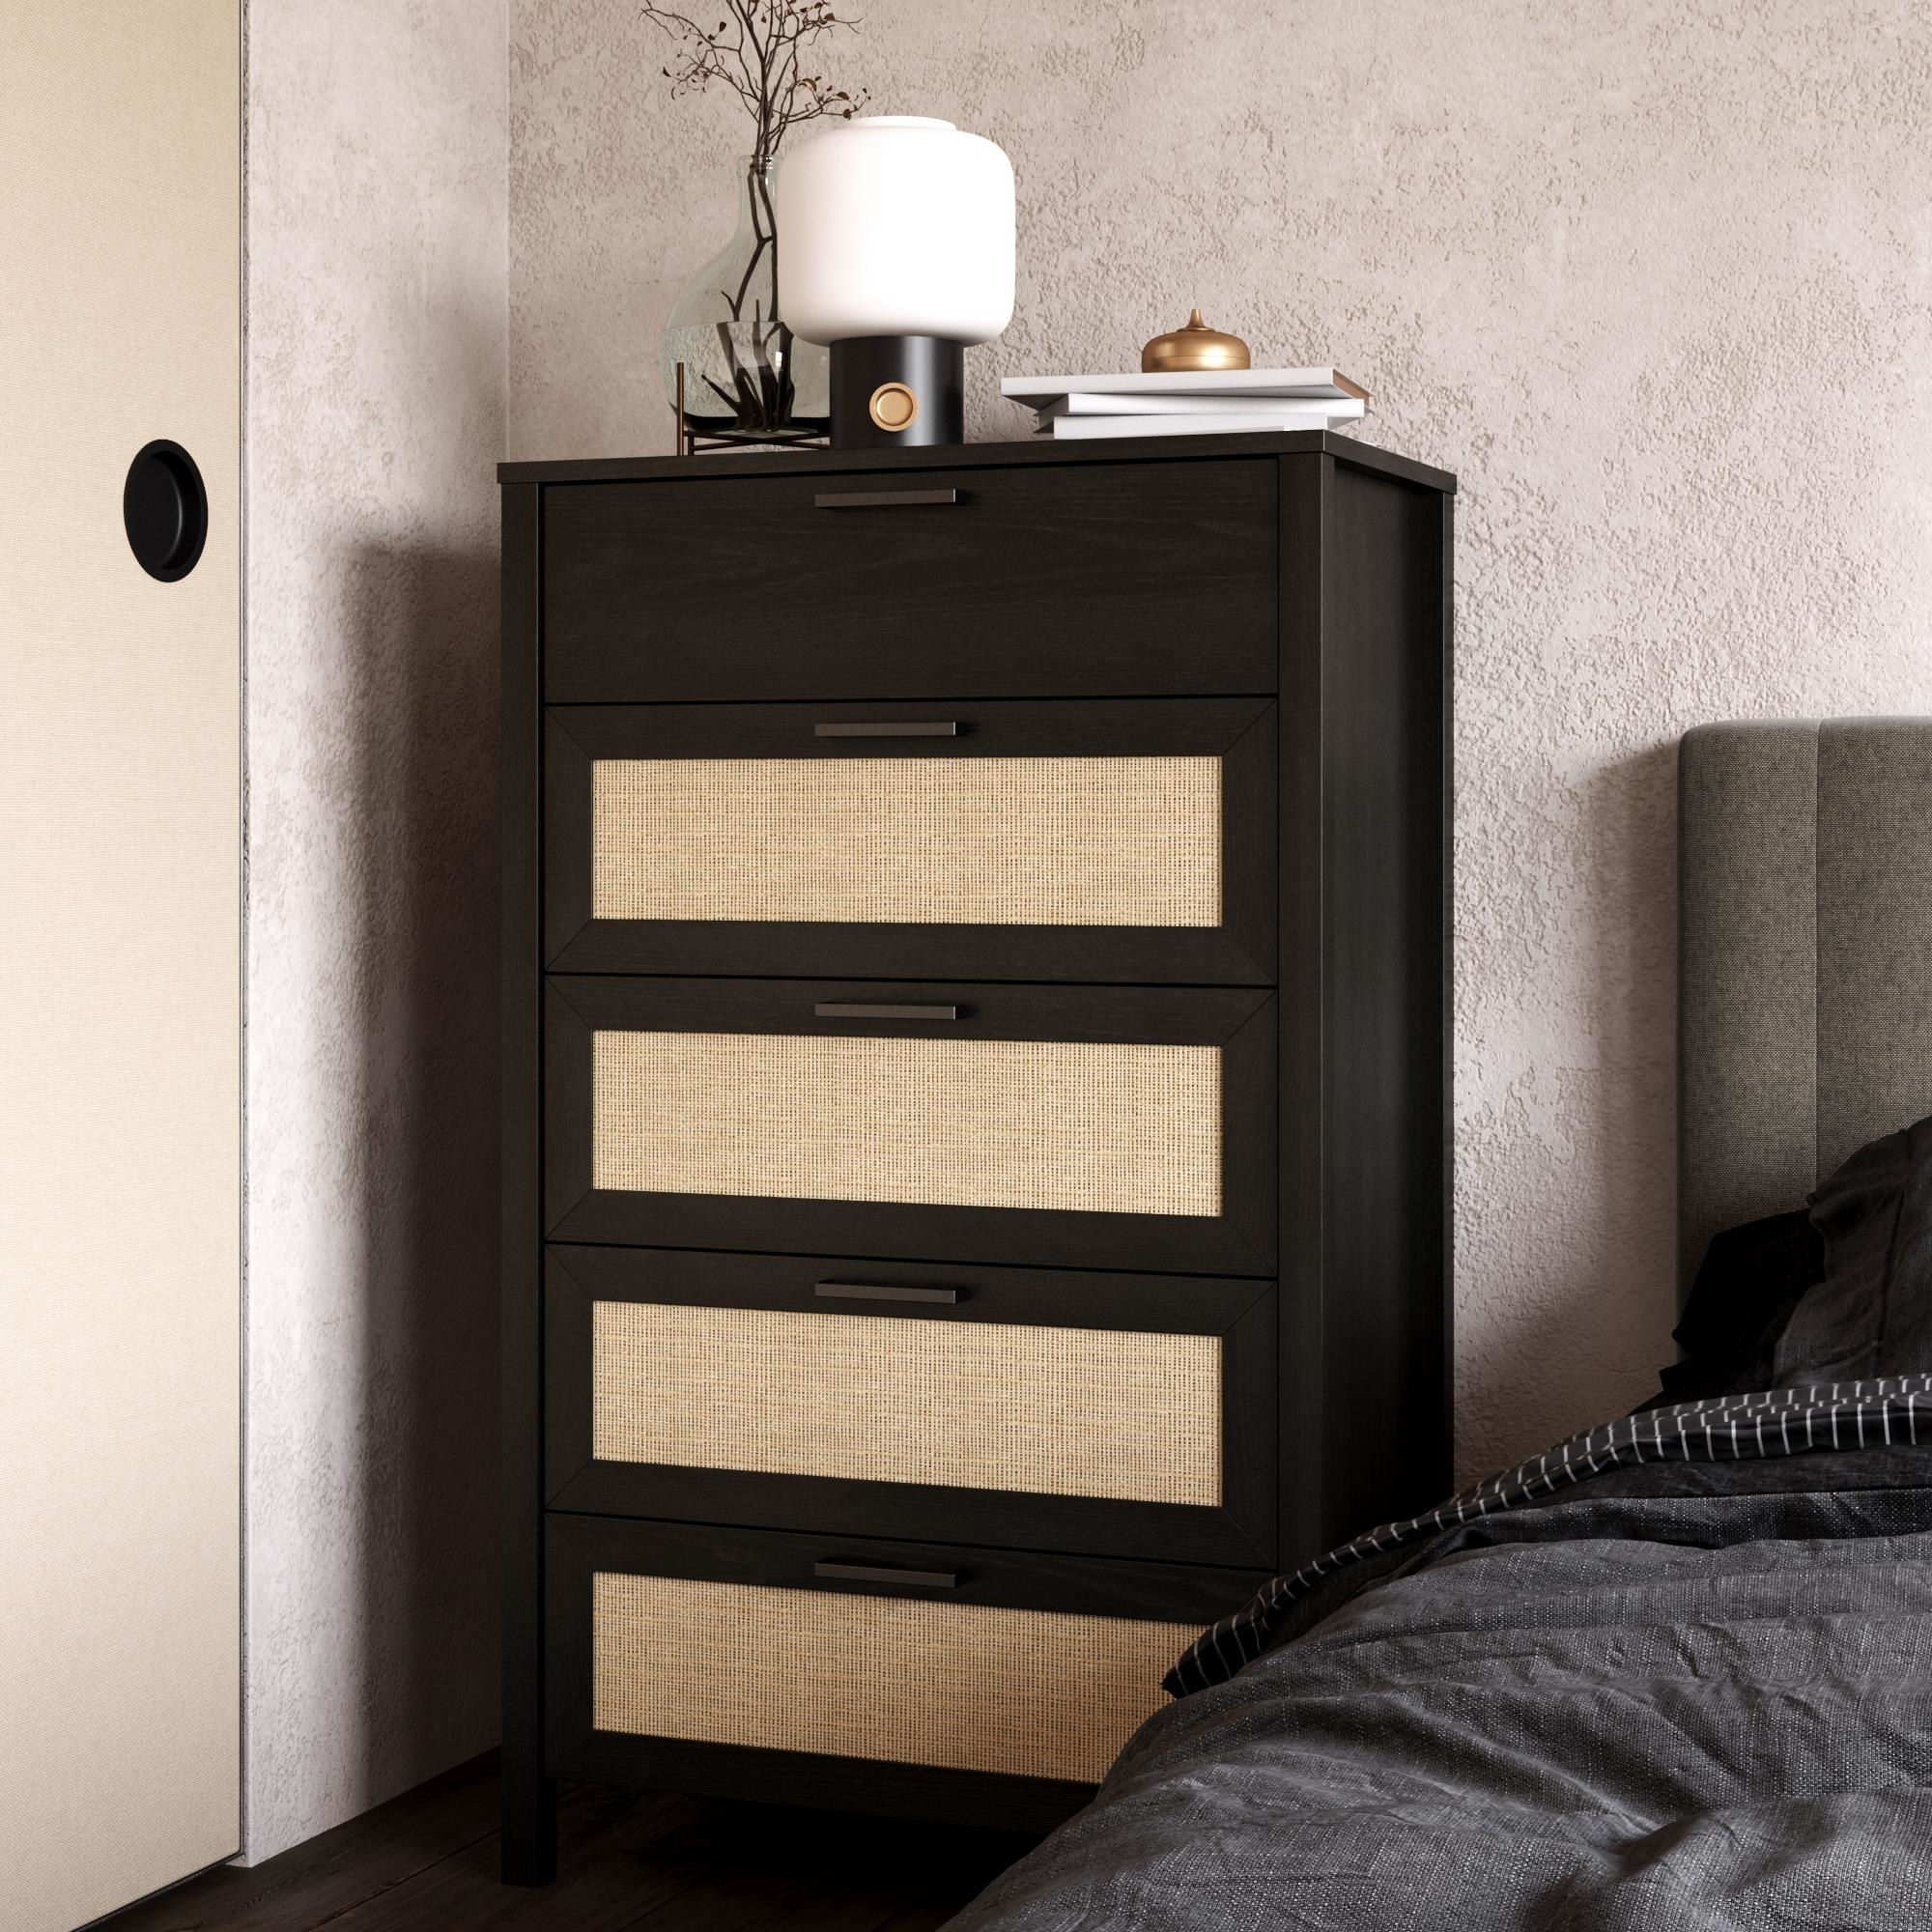 the dark faux wood dresser with light particle board drawers